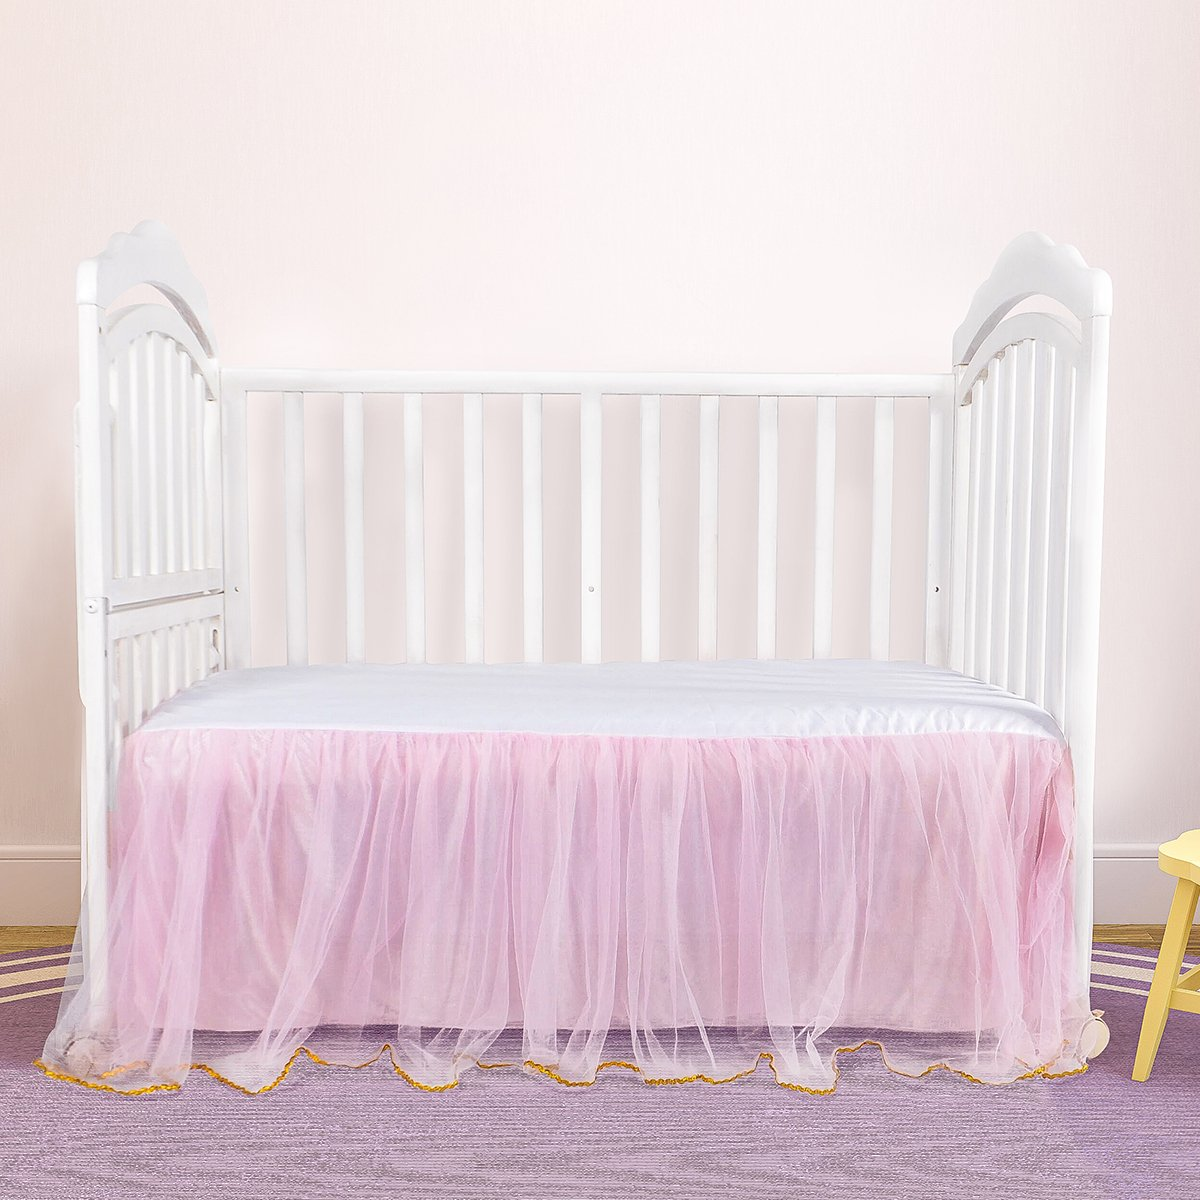 Pink Toddler Bed Skirt Mini Crib Skirt for Baby Boys and Girls Tulle Tutu Bed Skirt Fluffy for Baby Birthday Party,Baby Shower,Slumber Party and Babyroom Decoration